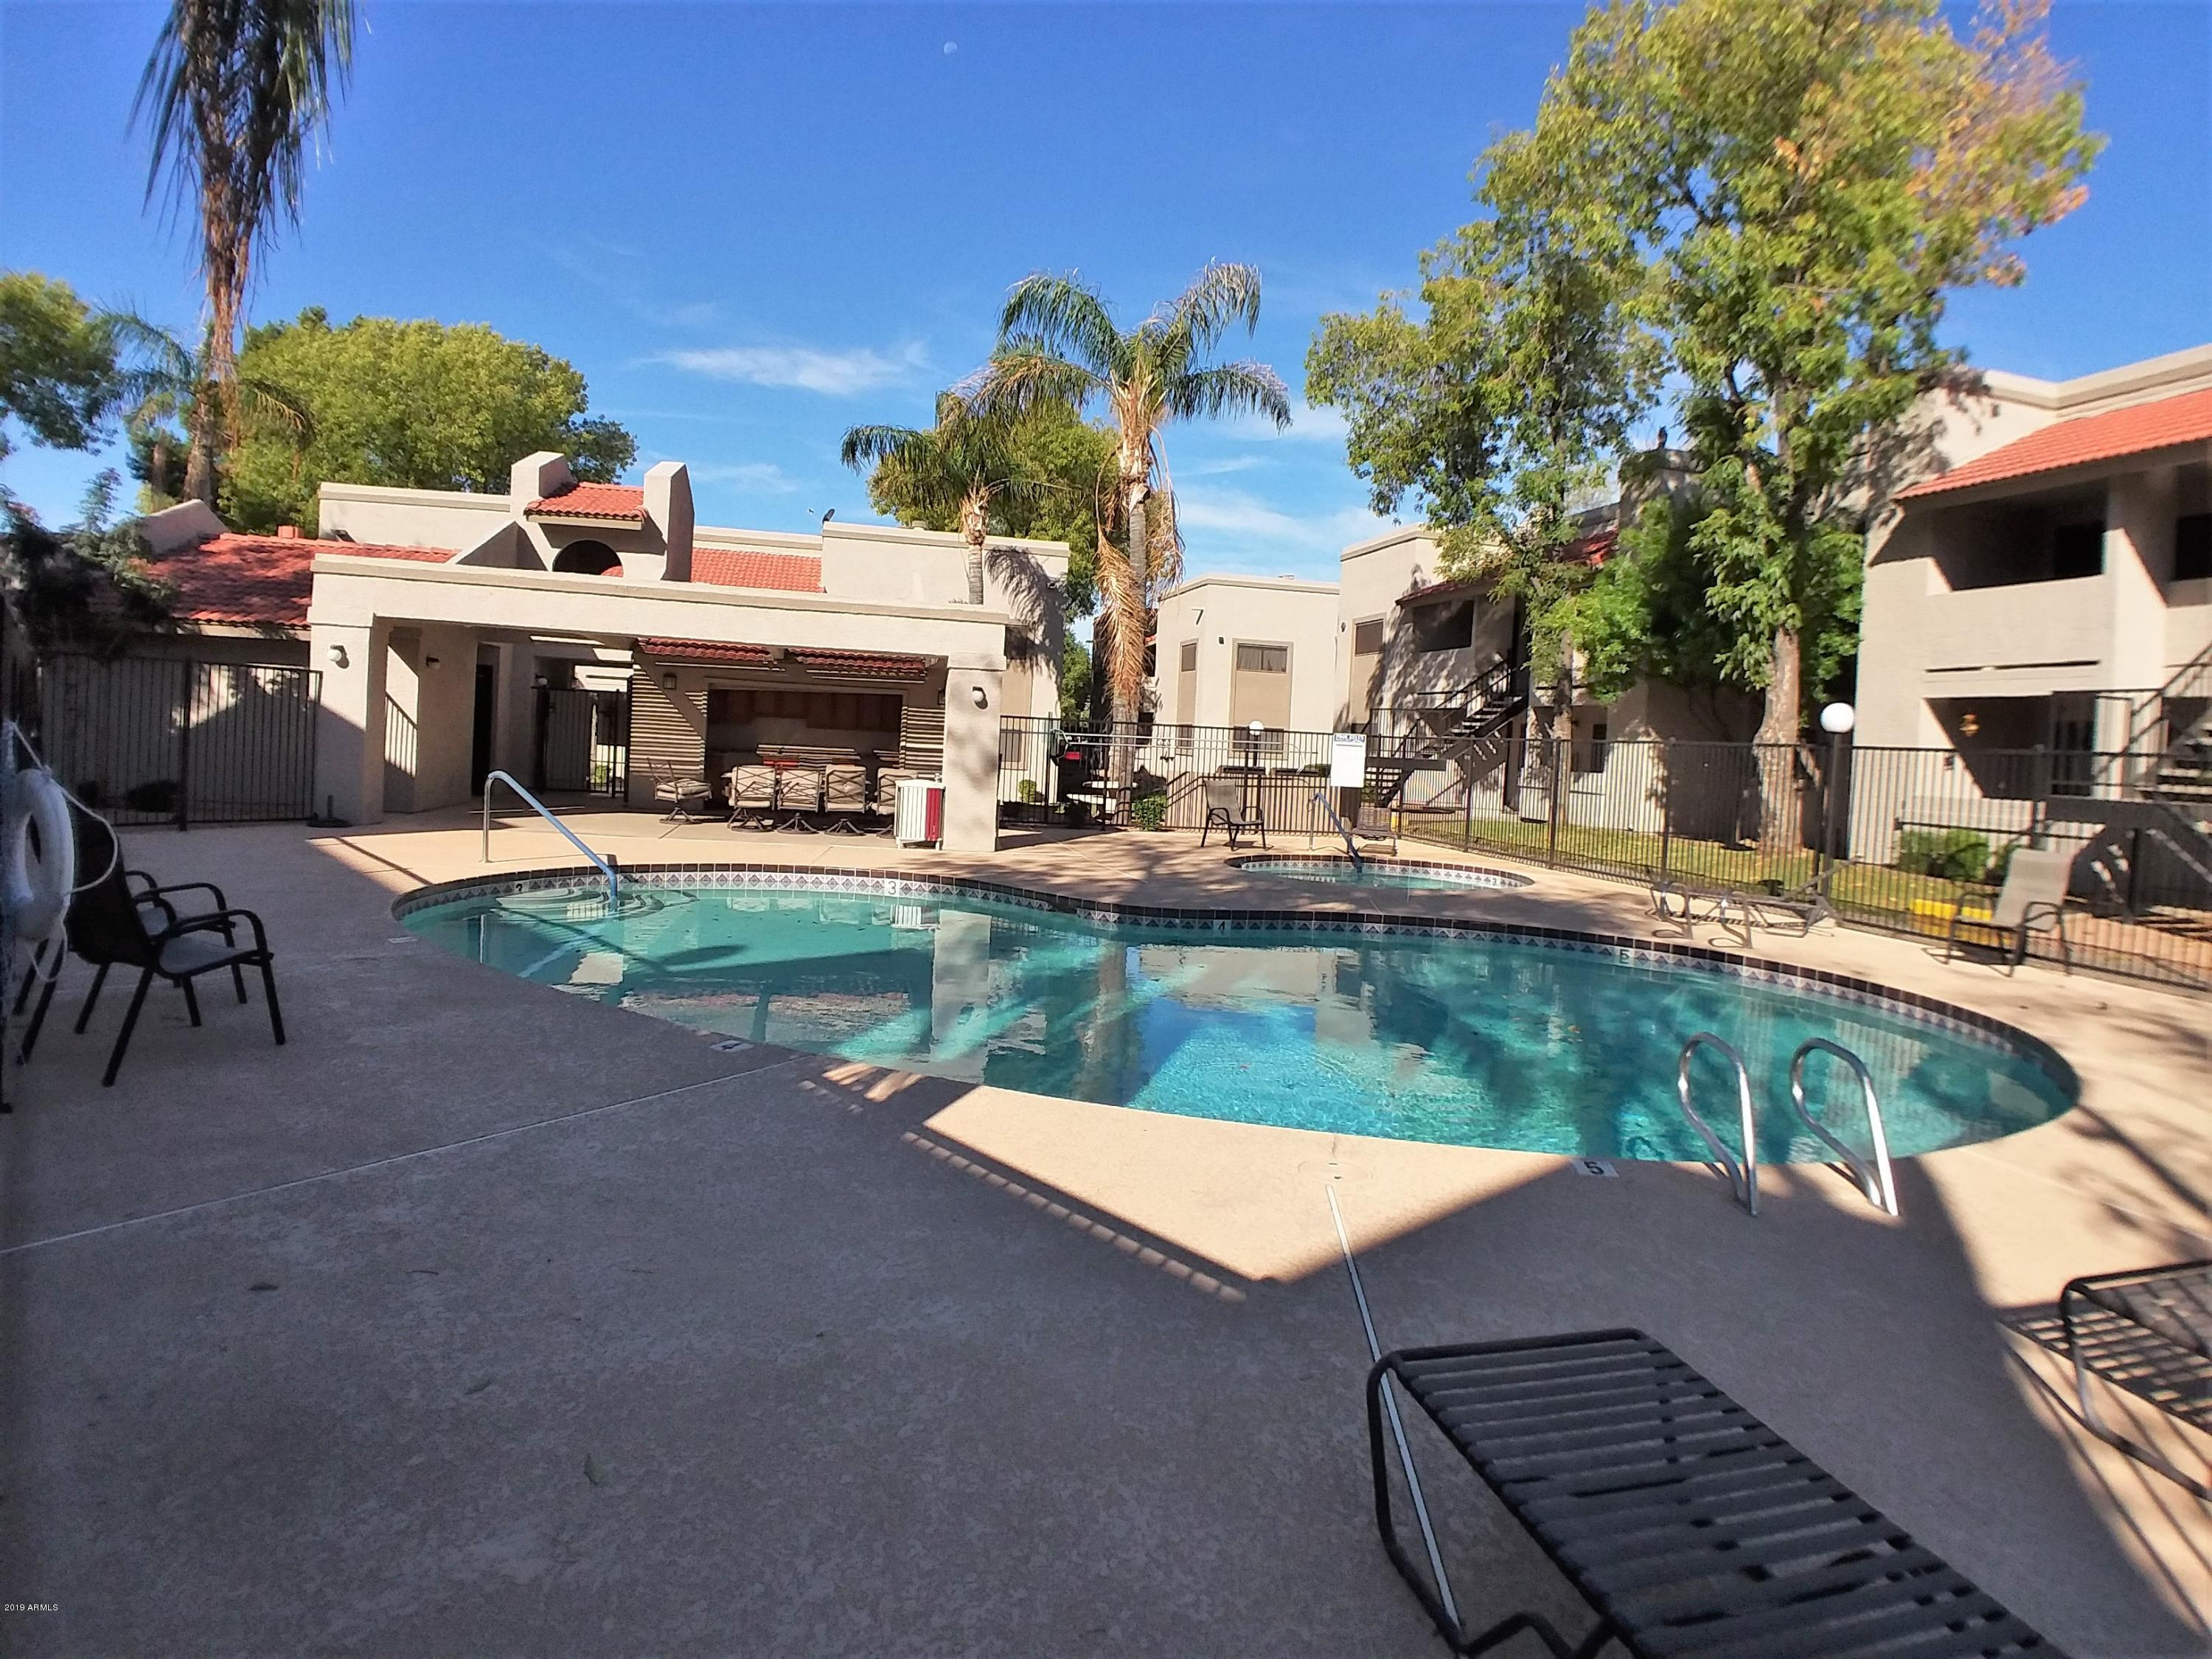 Photo of 234 N 75TH Street #202, Mesa, AZ 85207